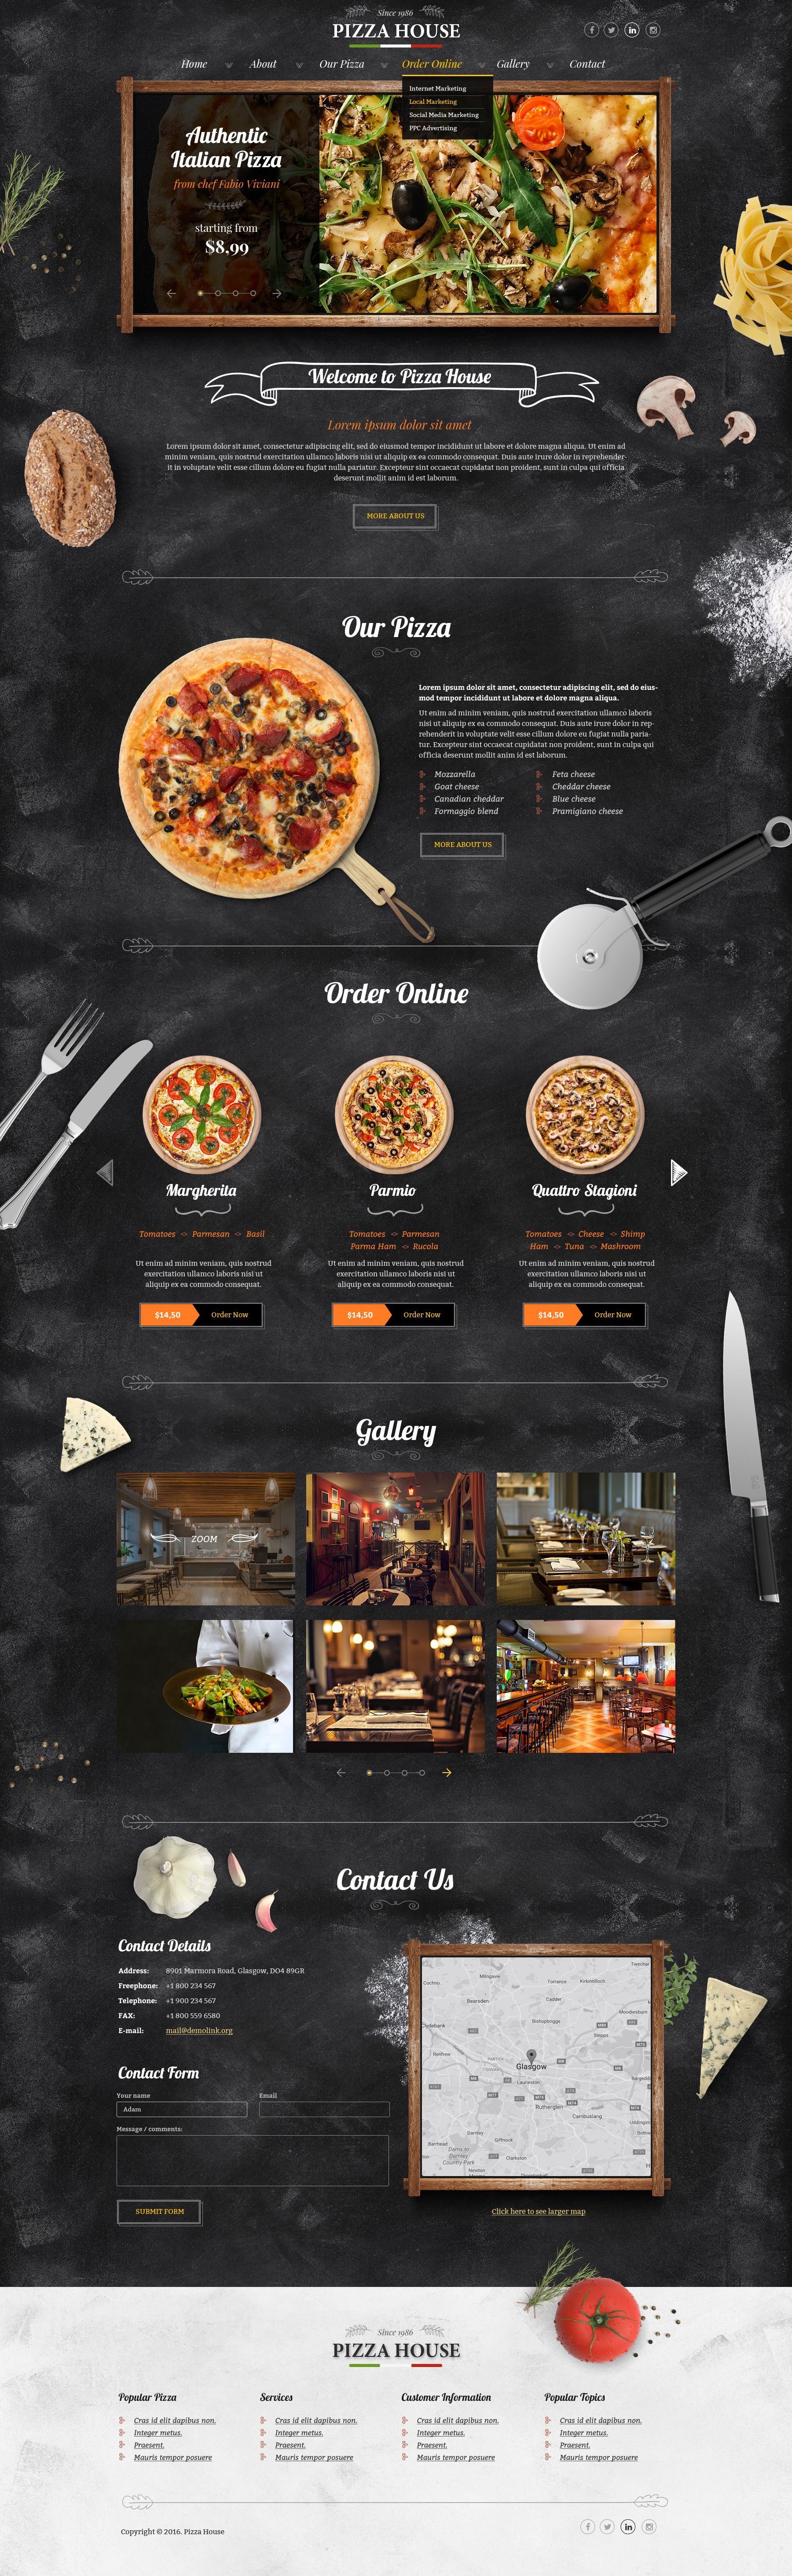 Bootstrap website template for pizzeria tags pizza website bootstrap website template for pizzeria tags pizza website template pizza templates pizzeria pronofoot35fo Images